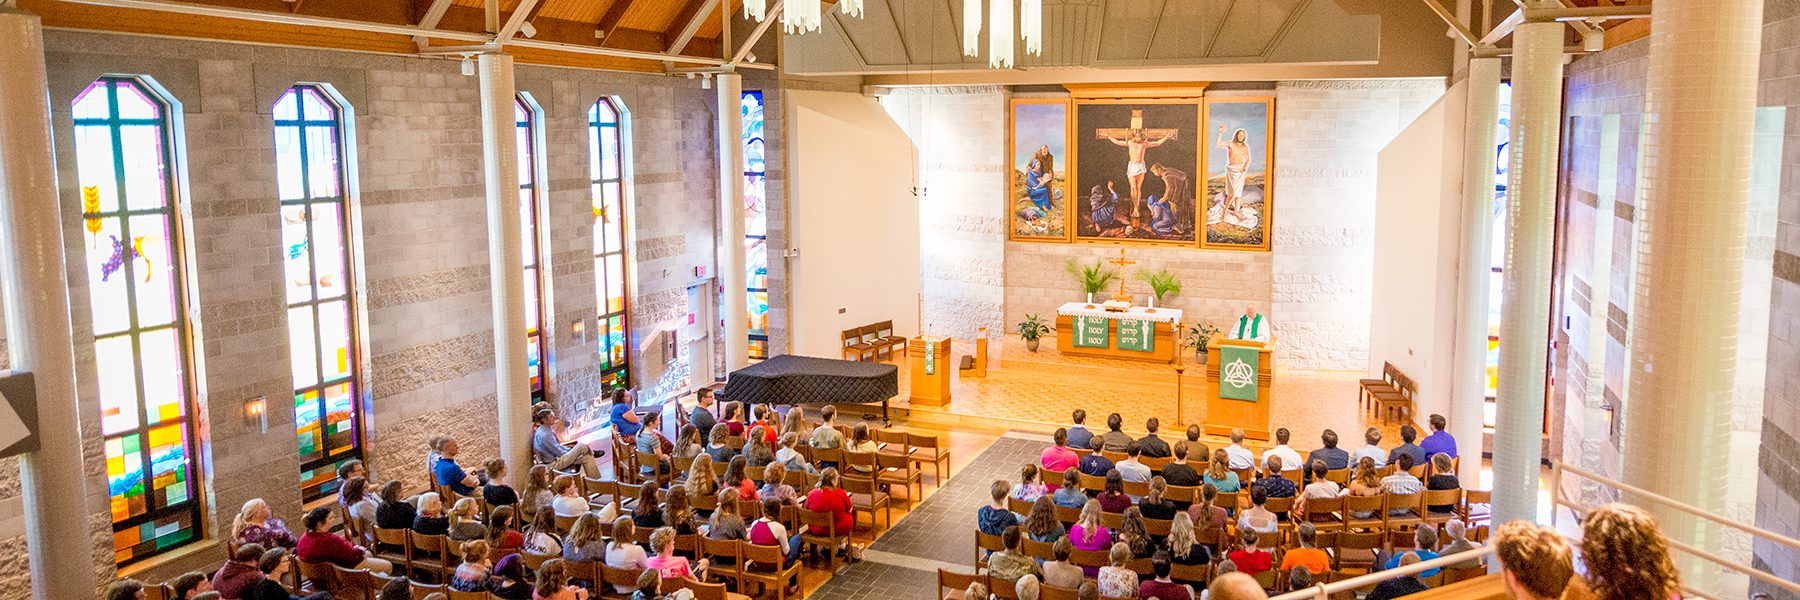 Photo of inside chapel during worship